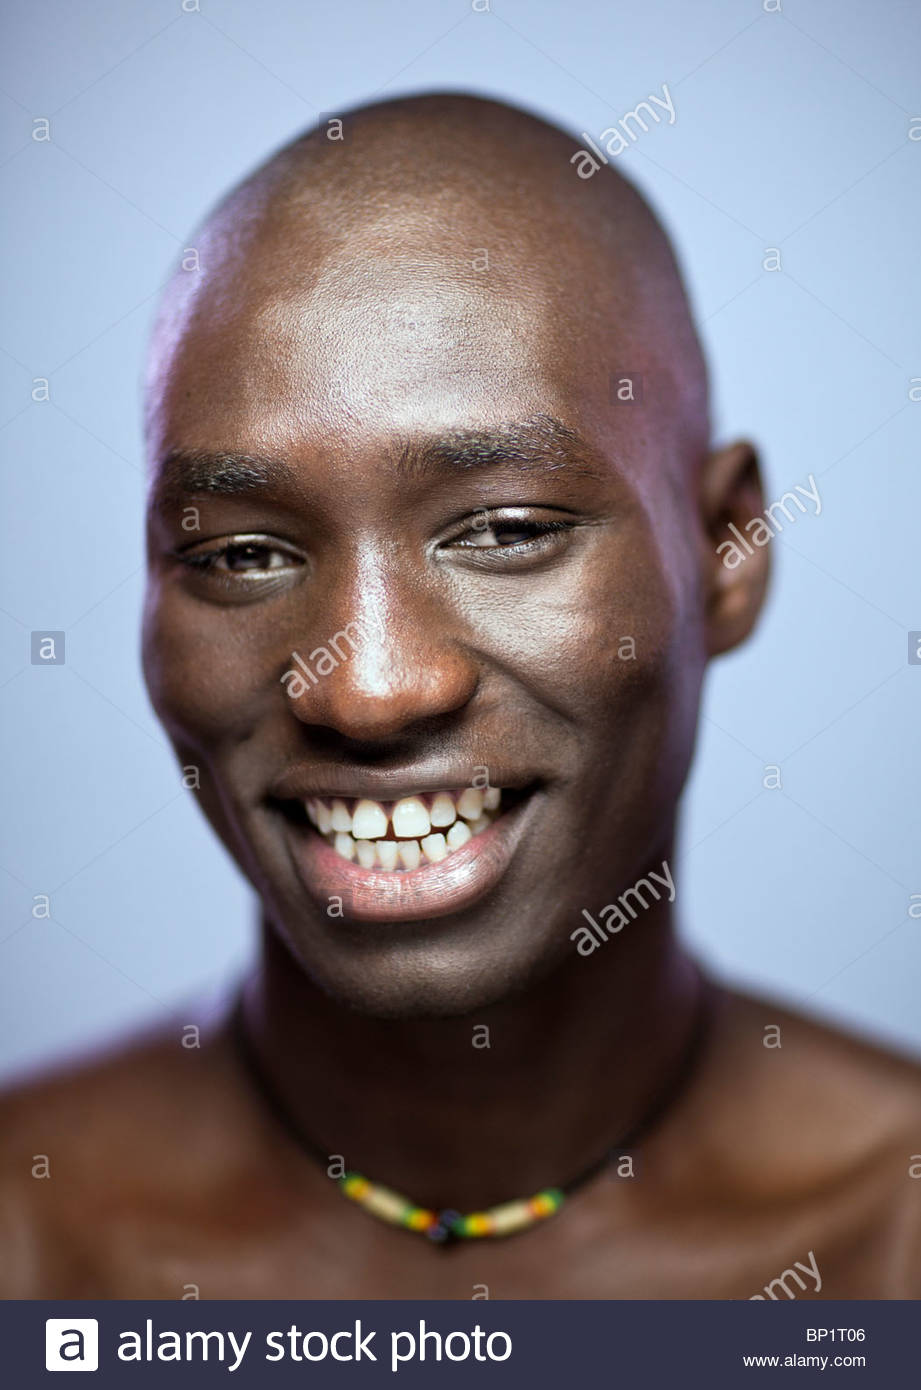 Close-up Portrait of African Man Smiling Photo Stock